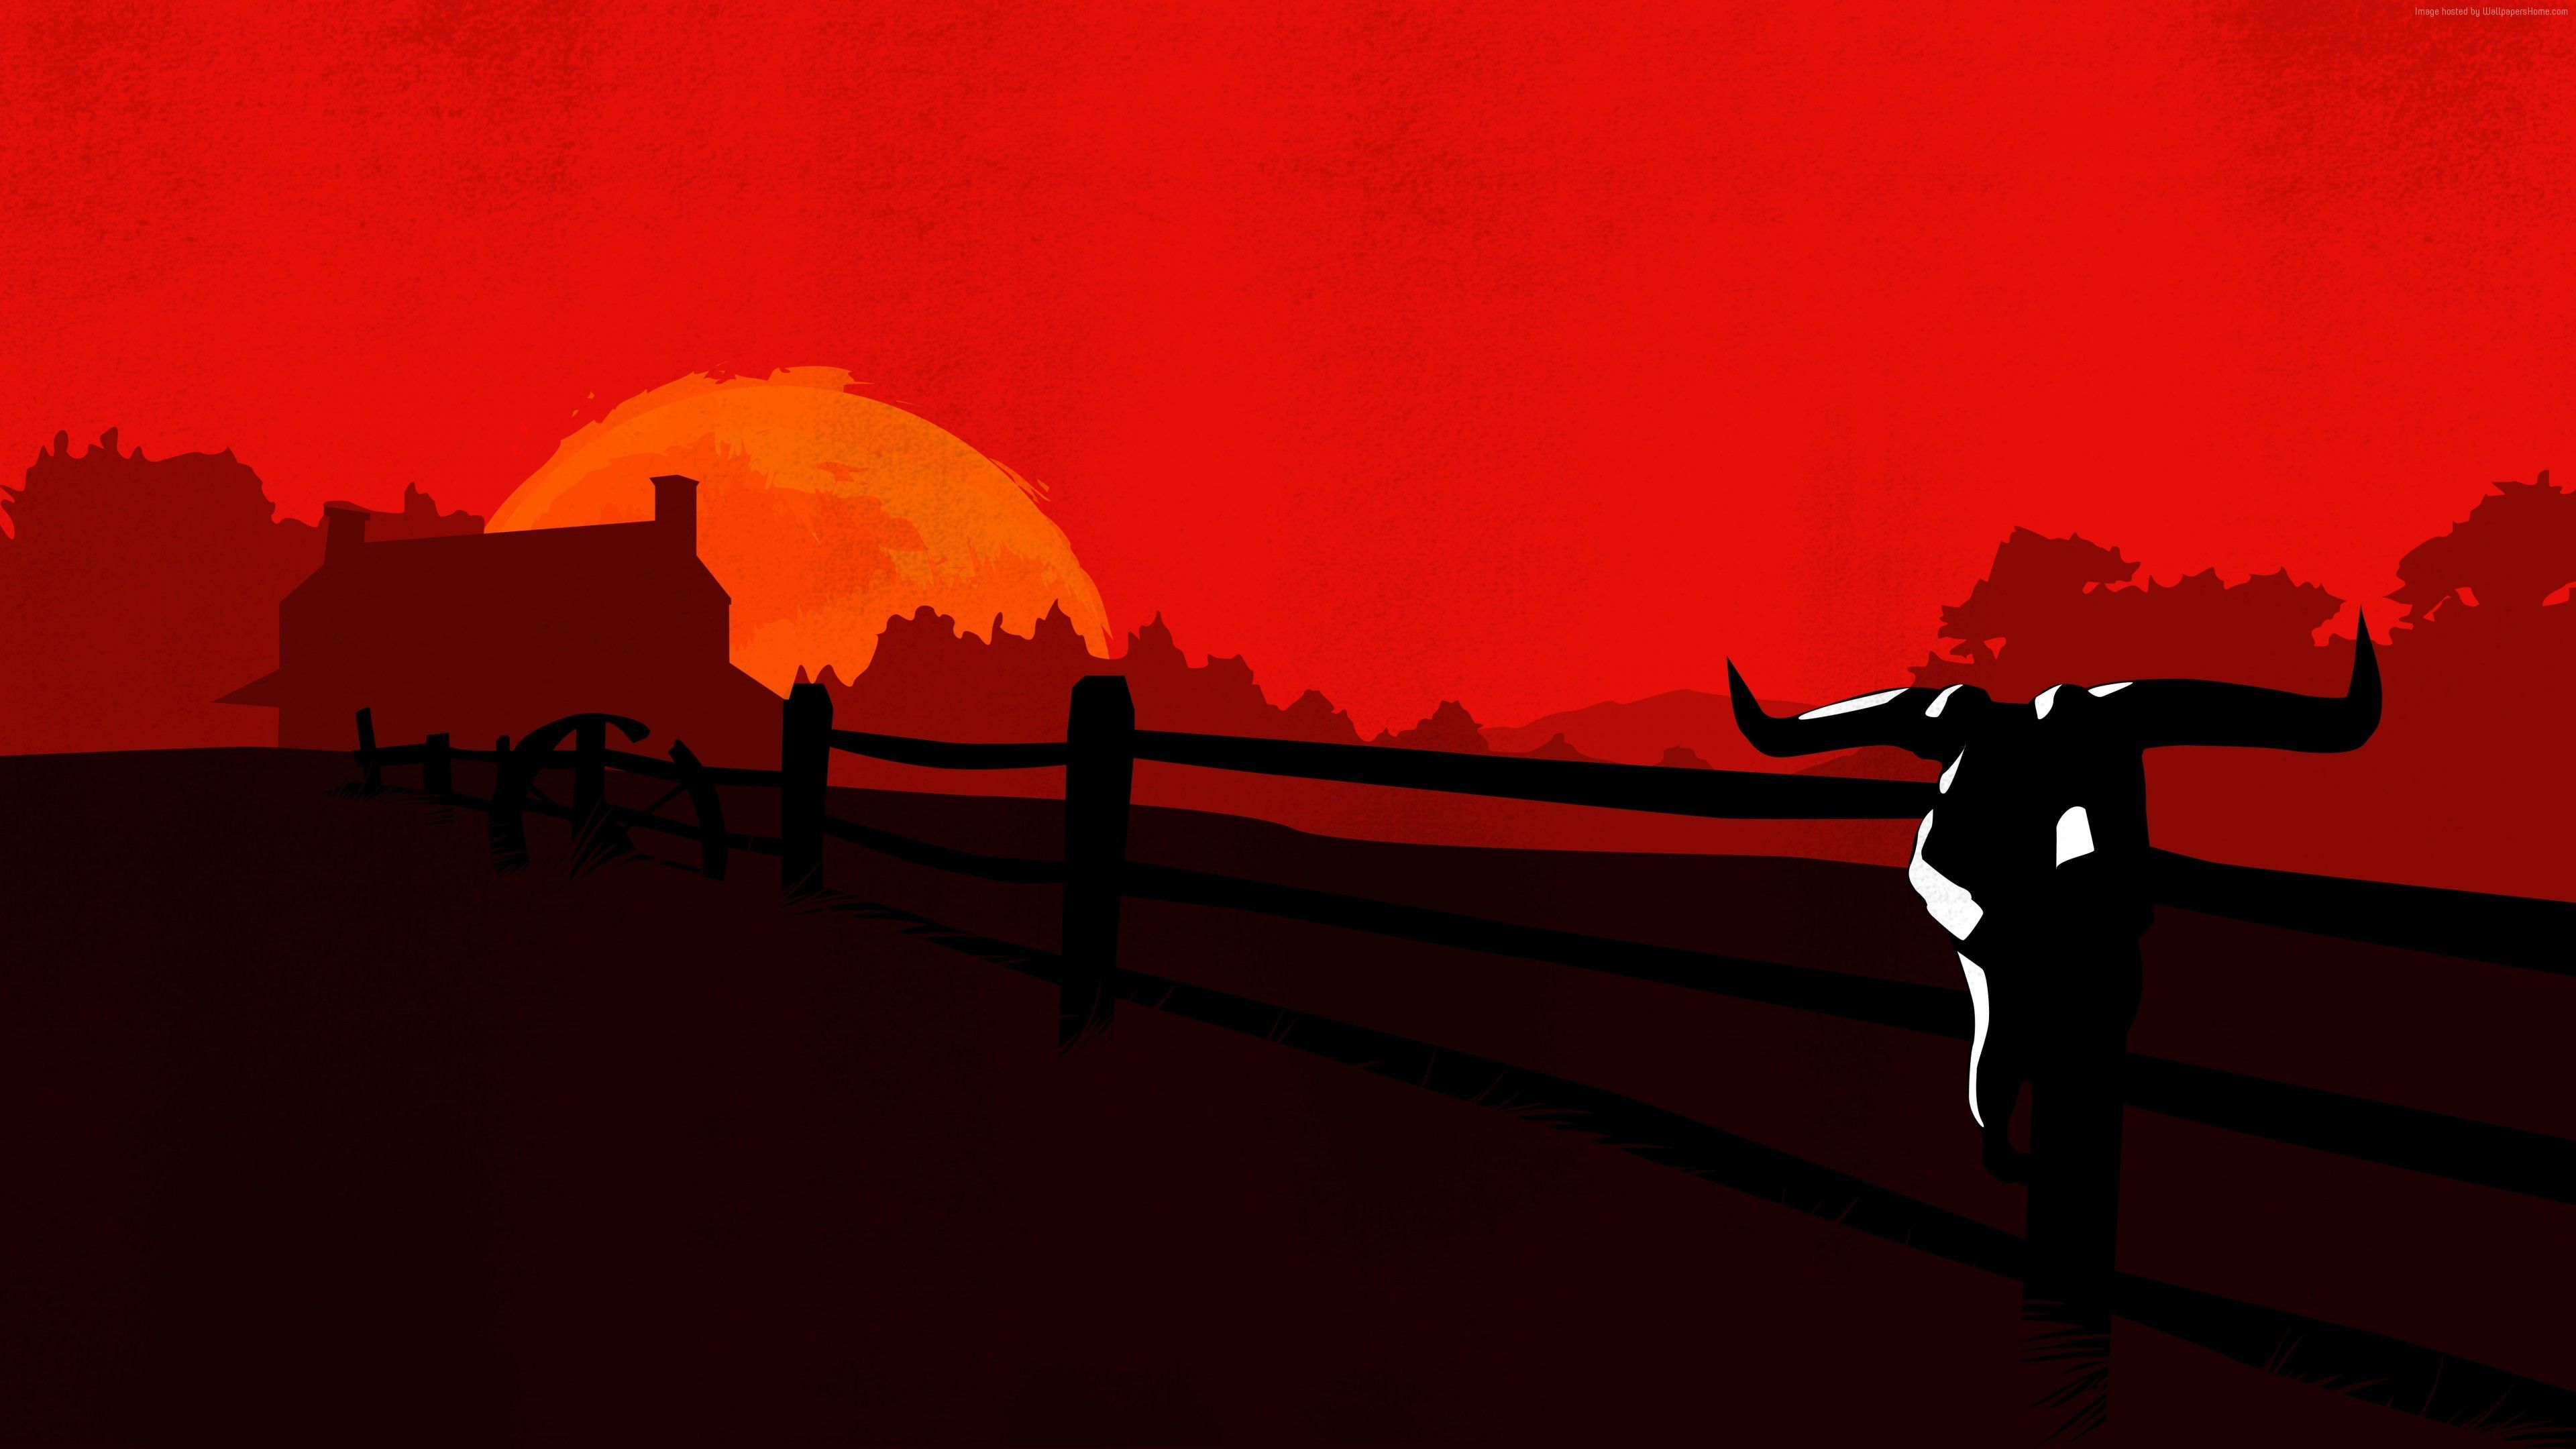 Red Dead Redemption 2 Wallpapers - Top Free Red Dead